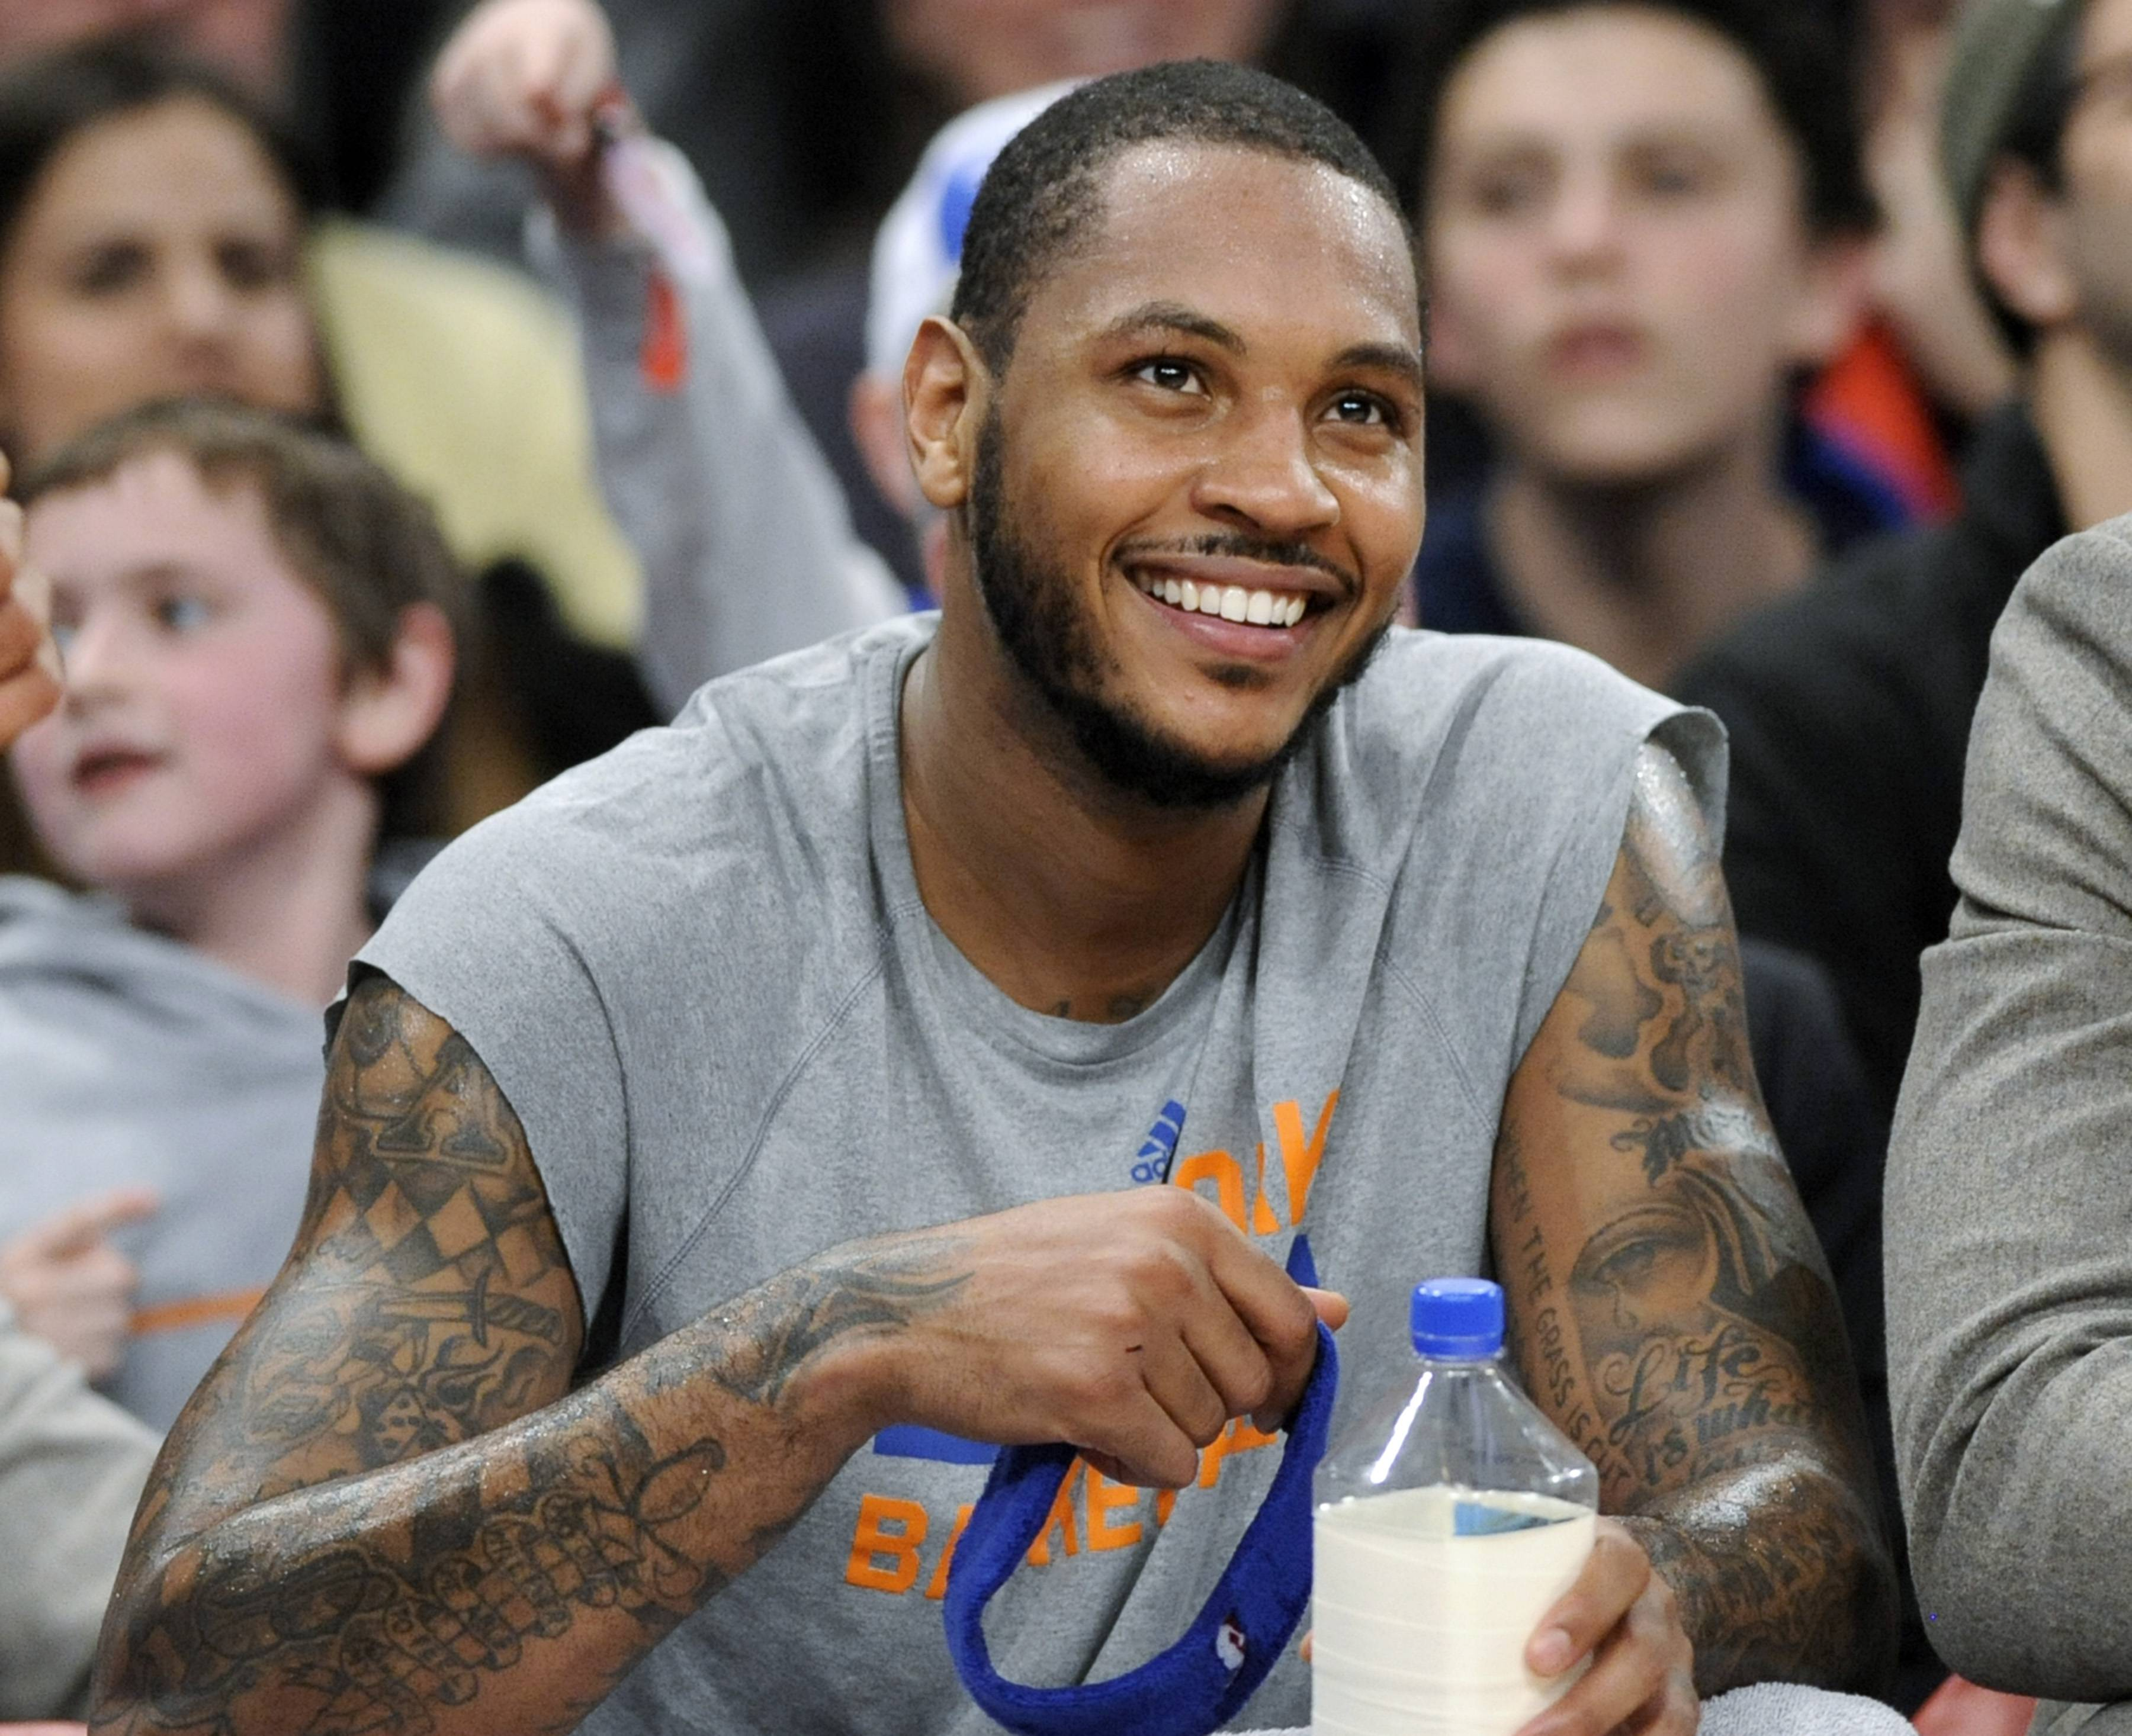 A league source told Mike McGraw that the Bulls' initial contract offer to Carmelo Anthony was in the neighborhood of four years for $75 million.